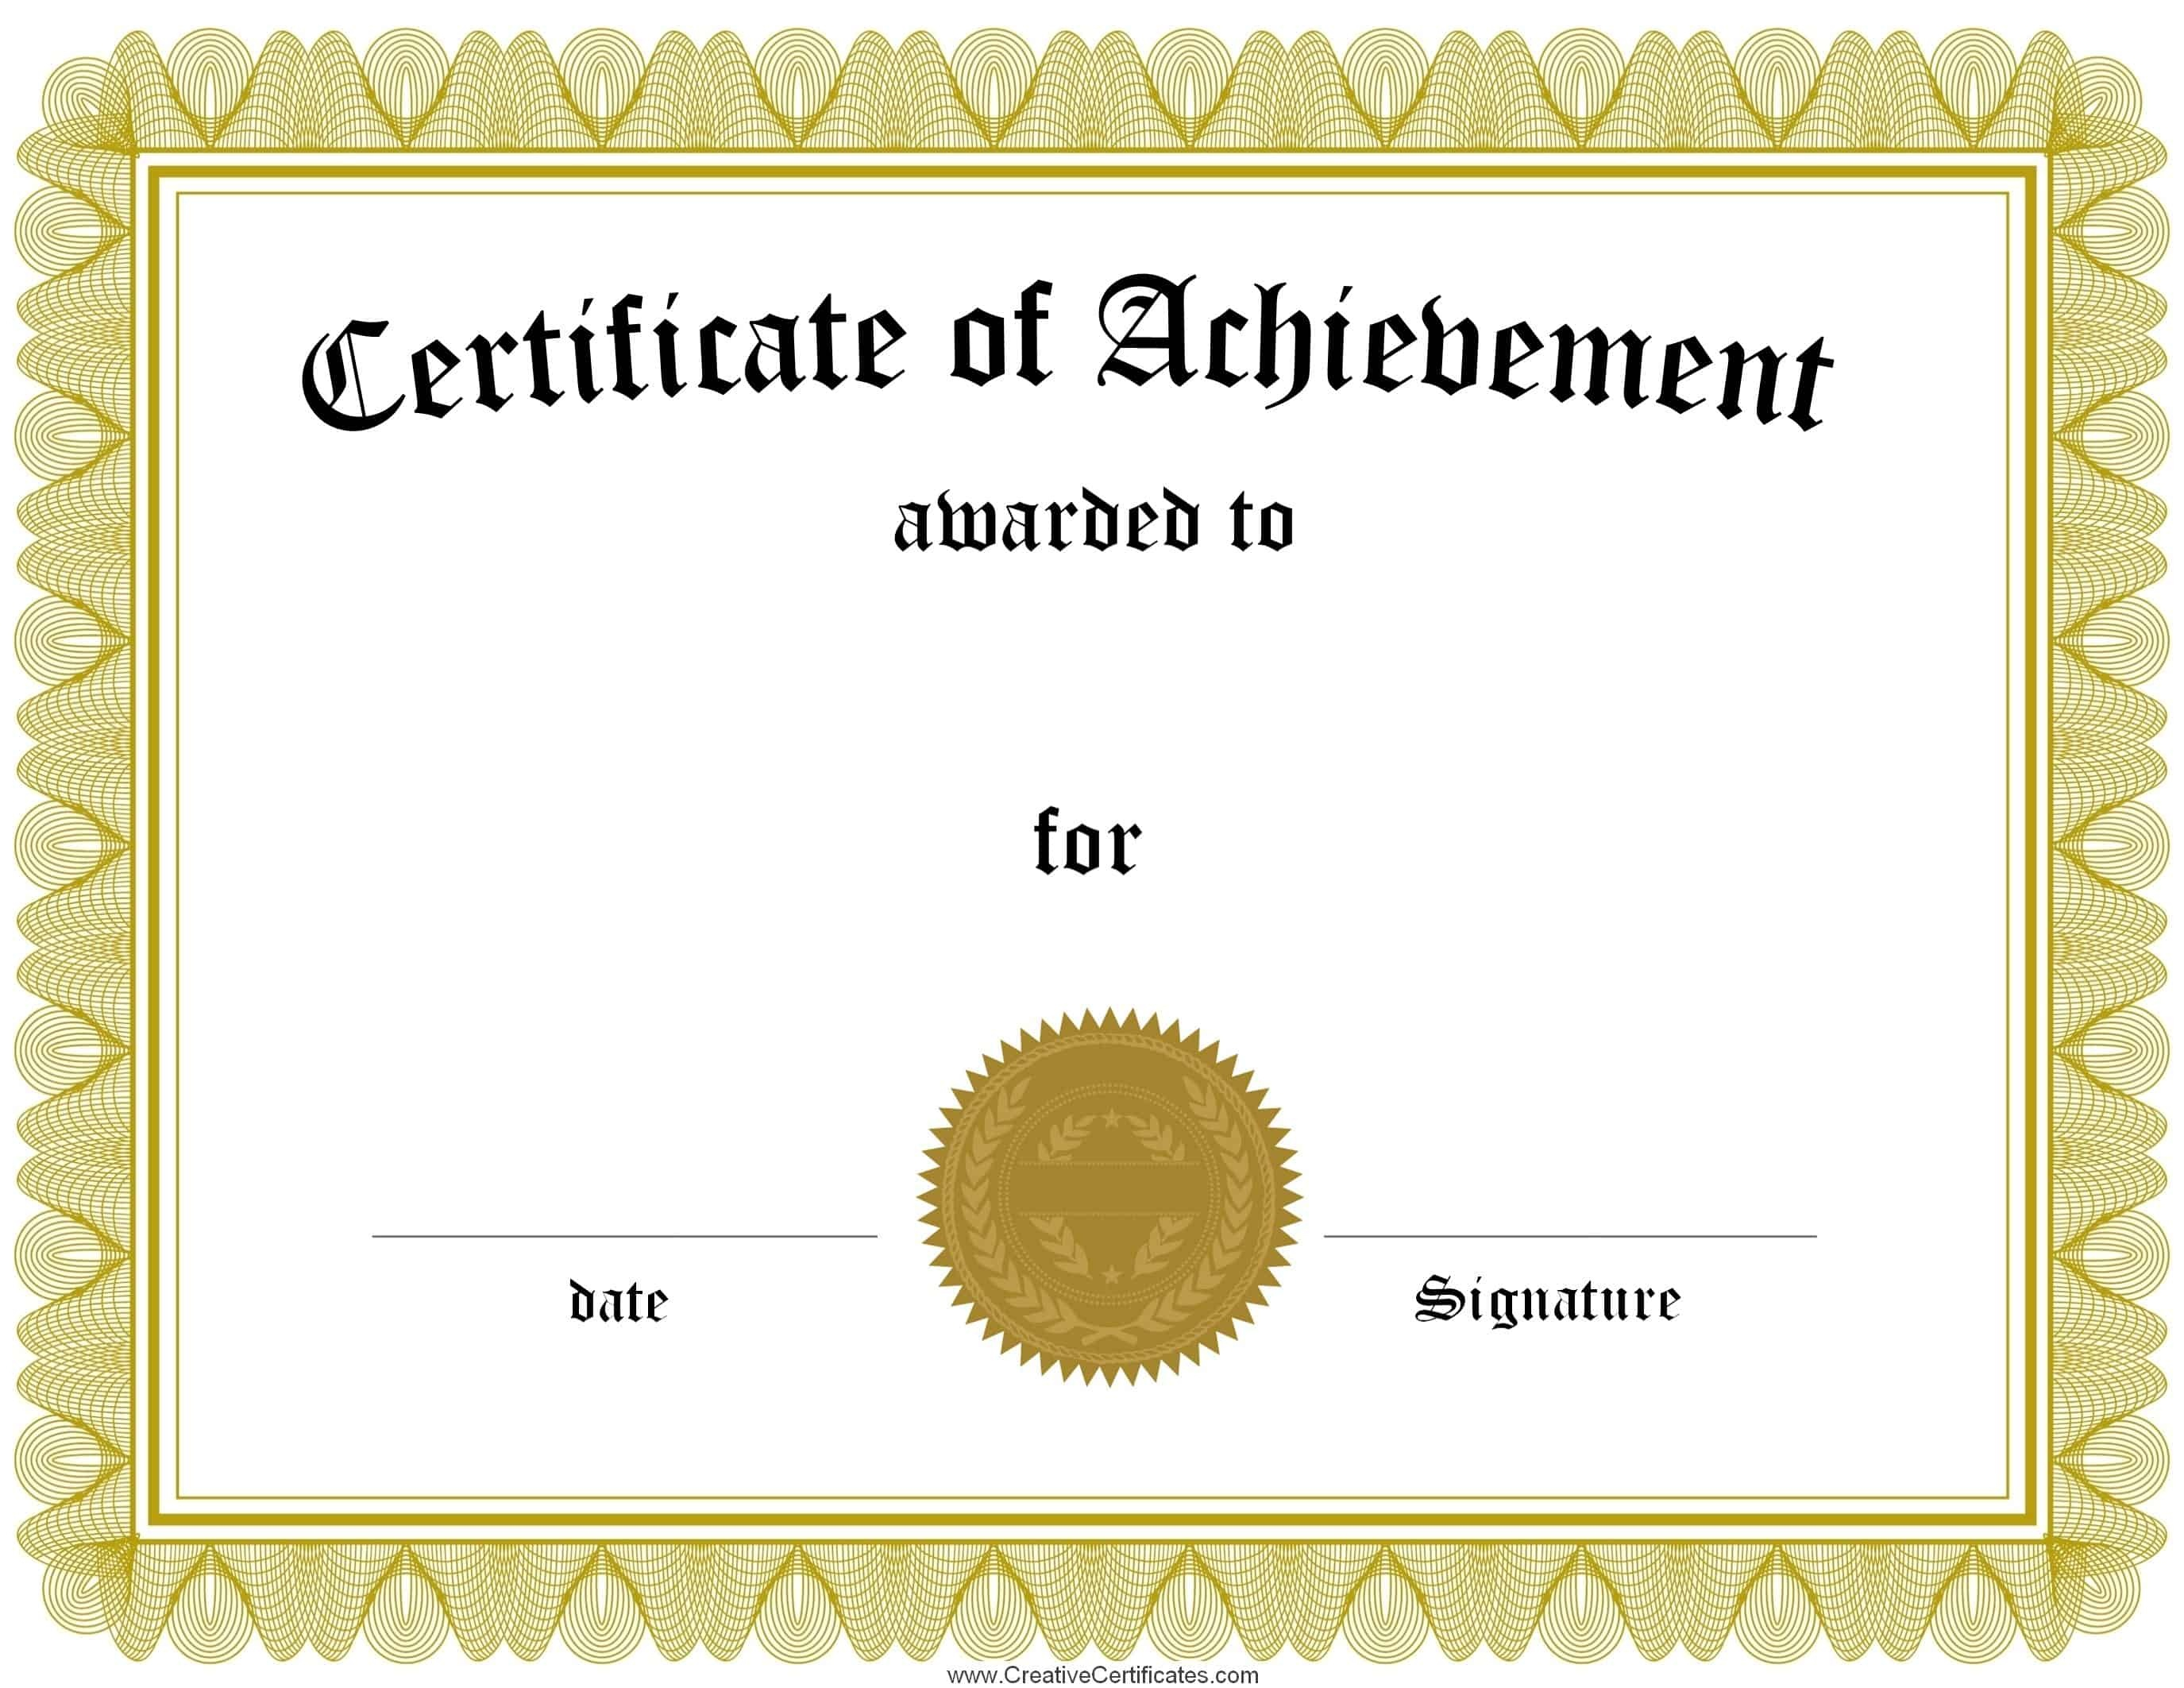 Free Customizable Certificate Of Achievement - Free Customizable Printable Certificates Of Achievement